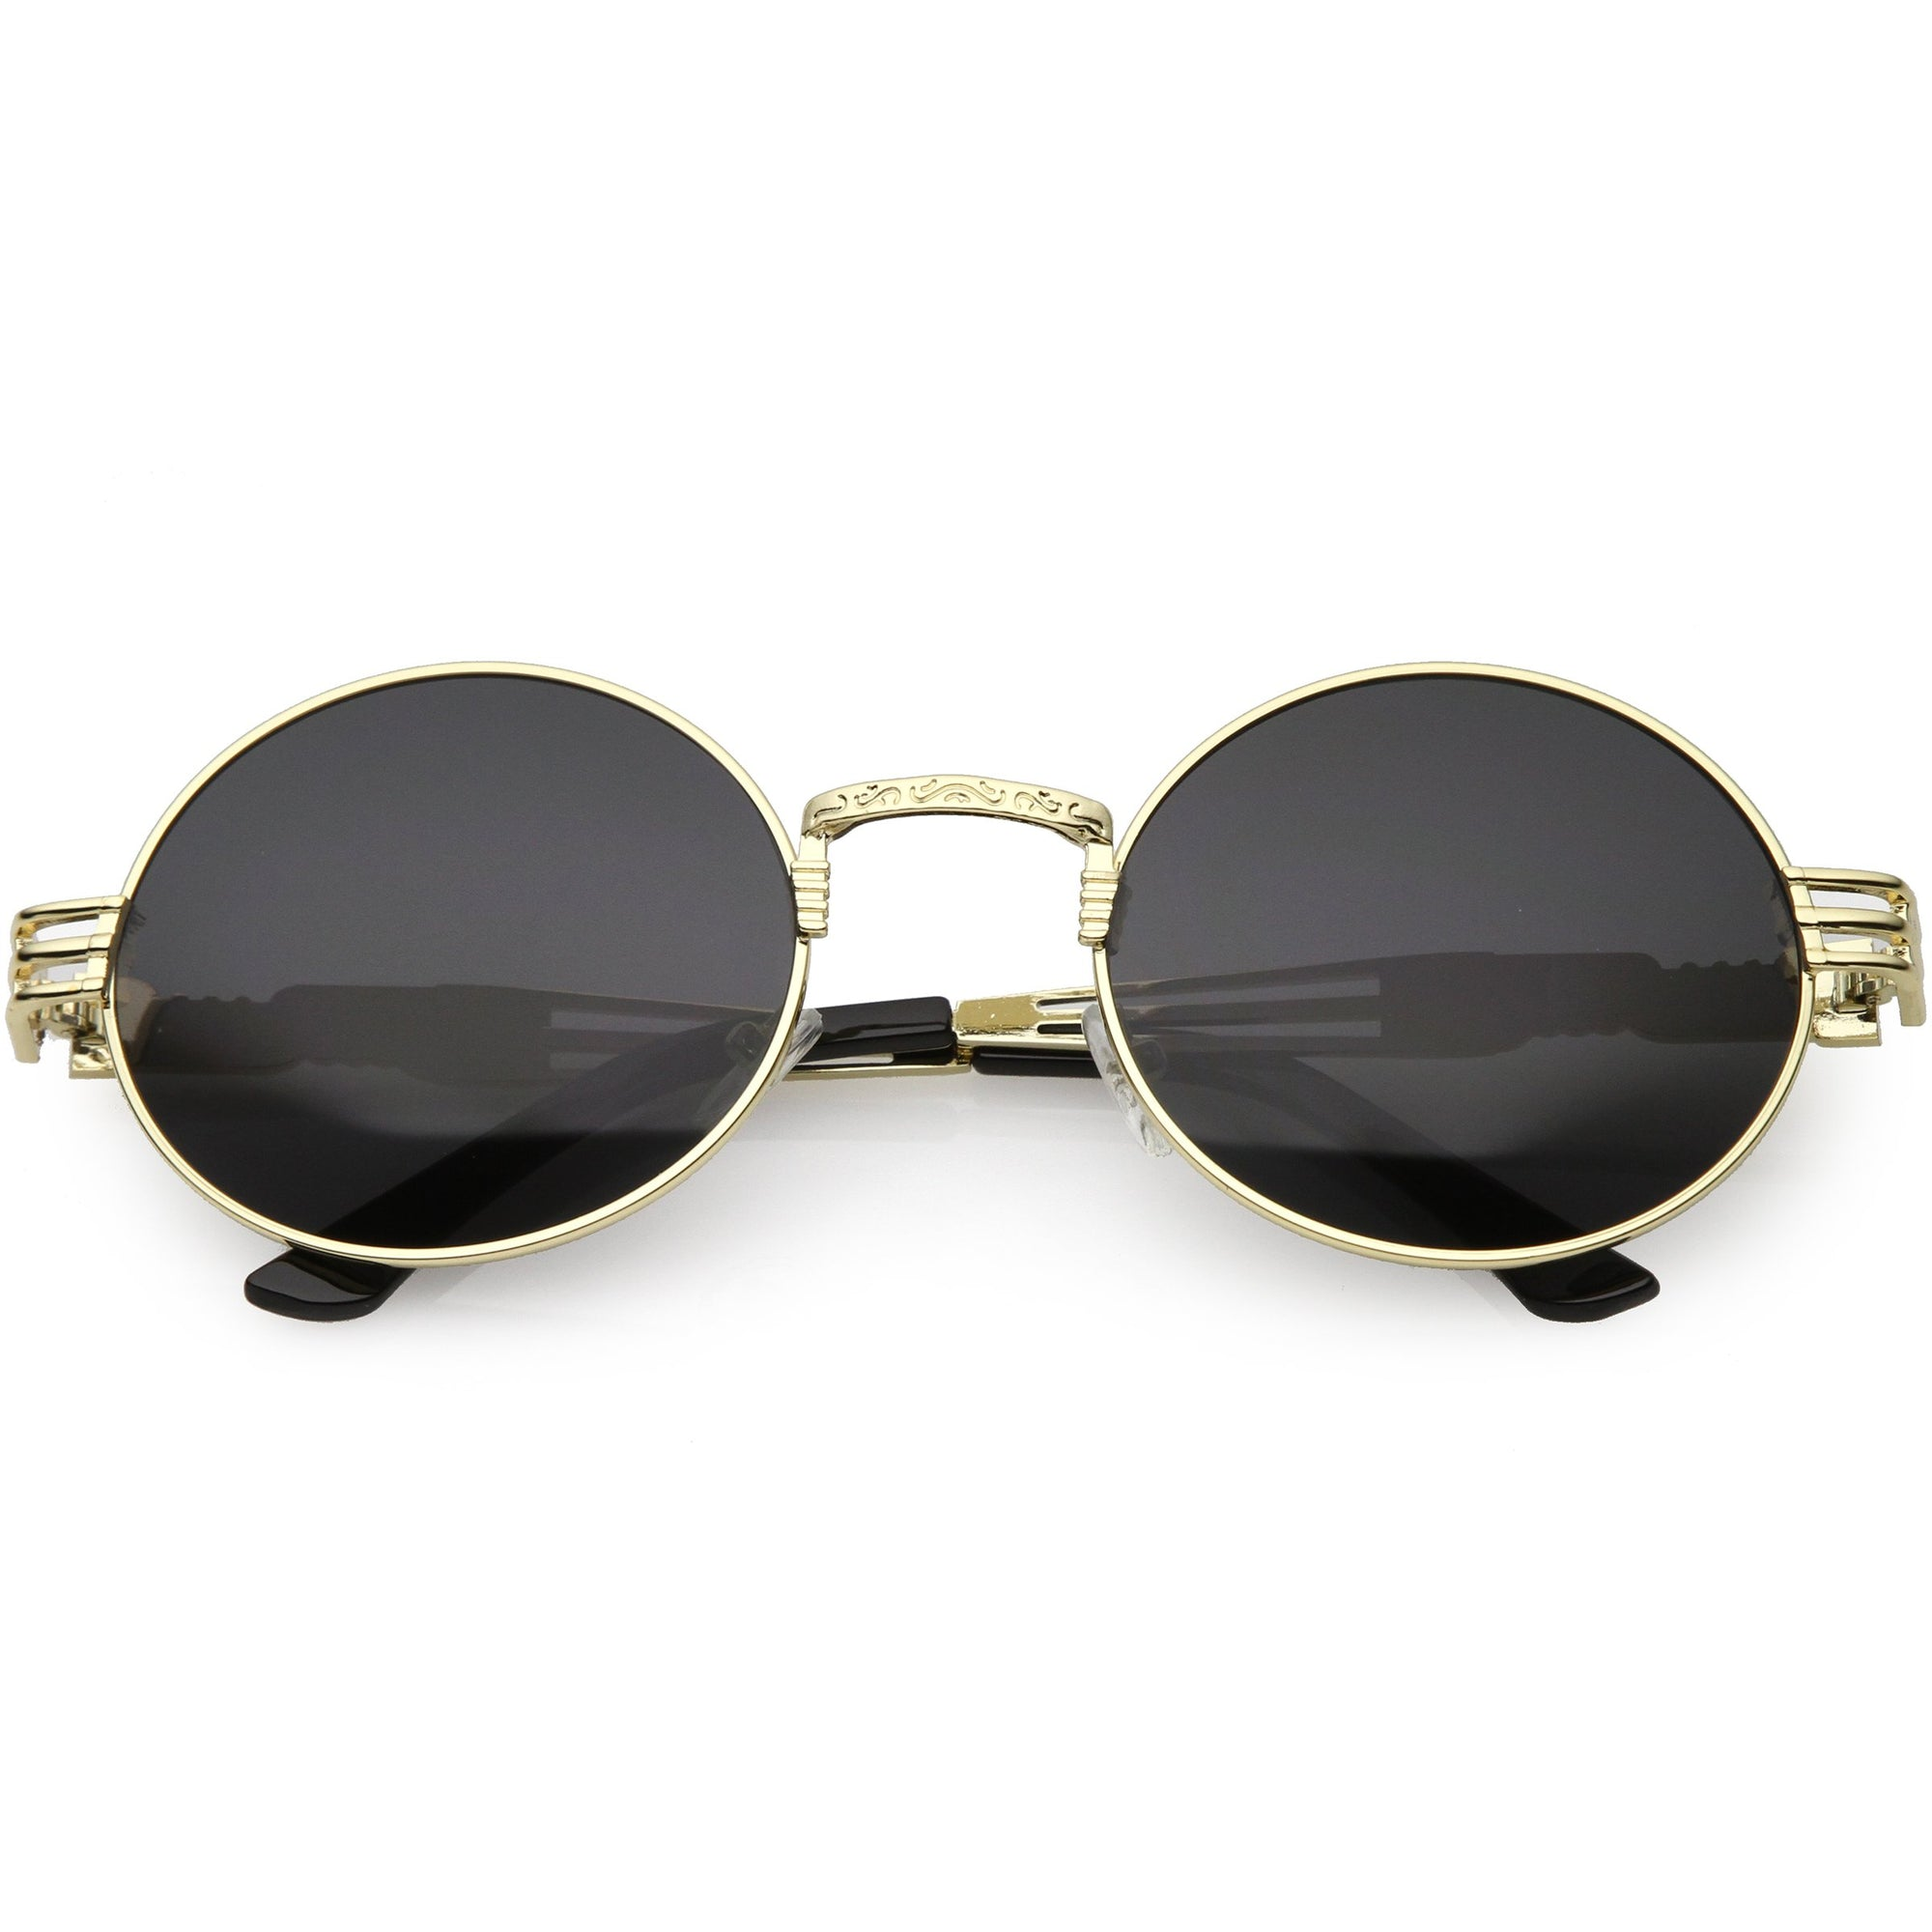 00627e22cd Vintage Steampunk Inspired Metal Oval Sunglasses C667